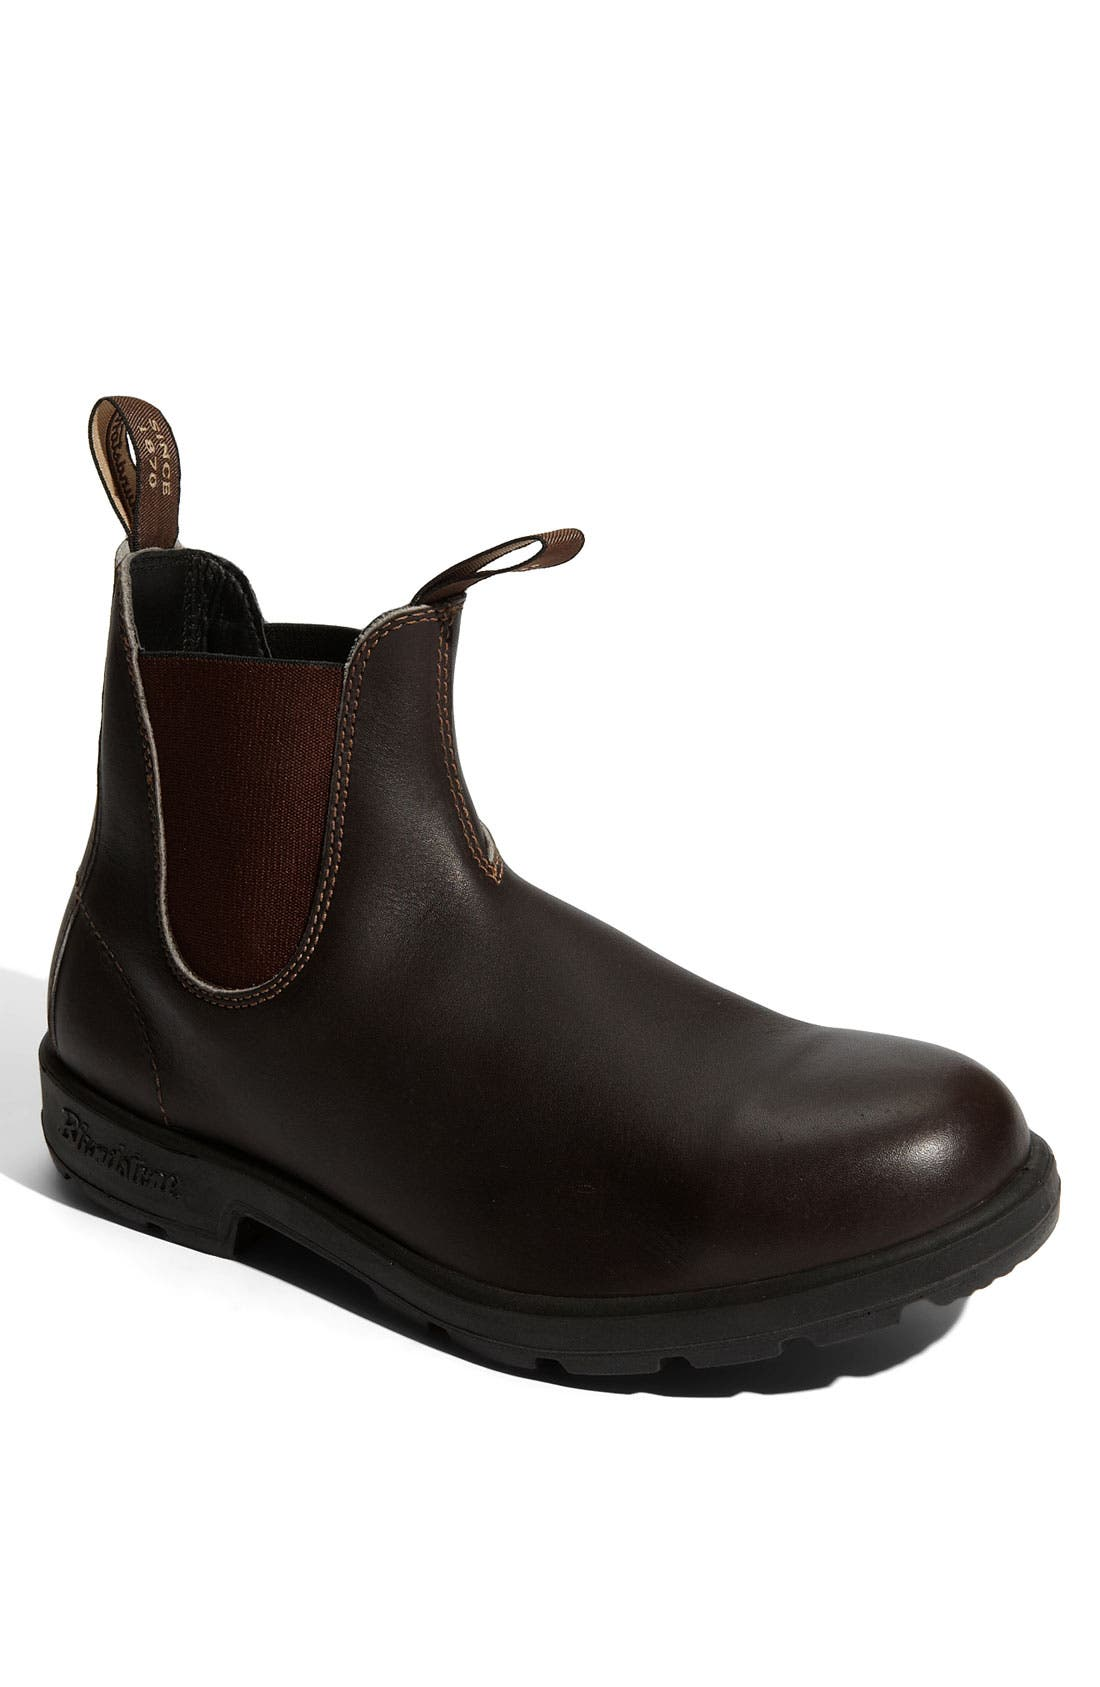 BLUNDSTONE Footwear Classic Boot in Stout Brown